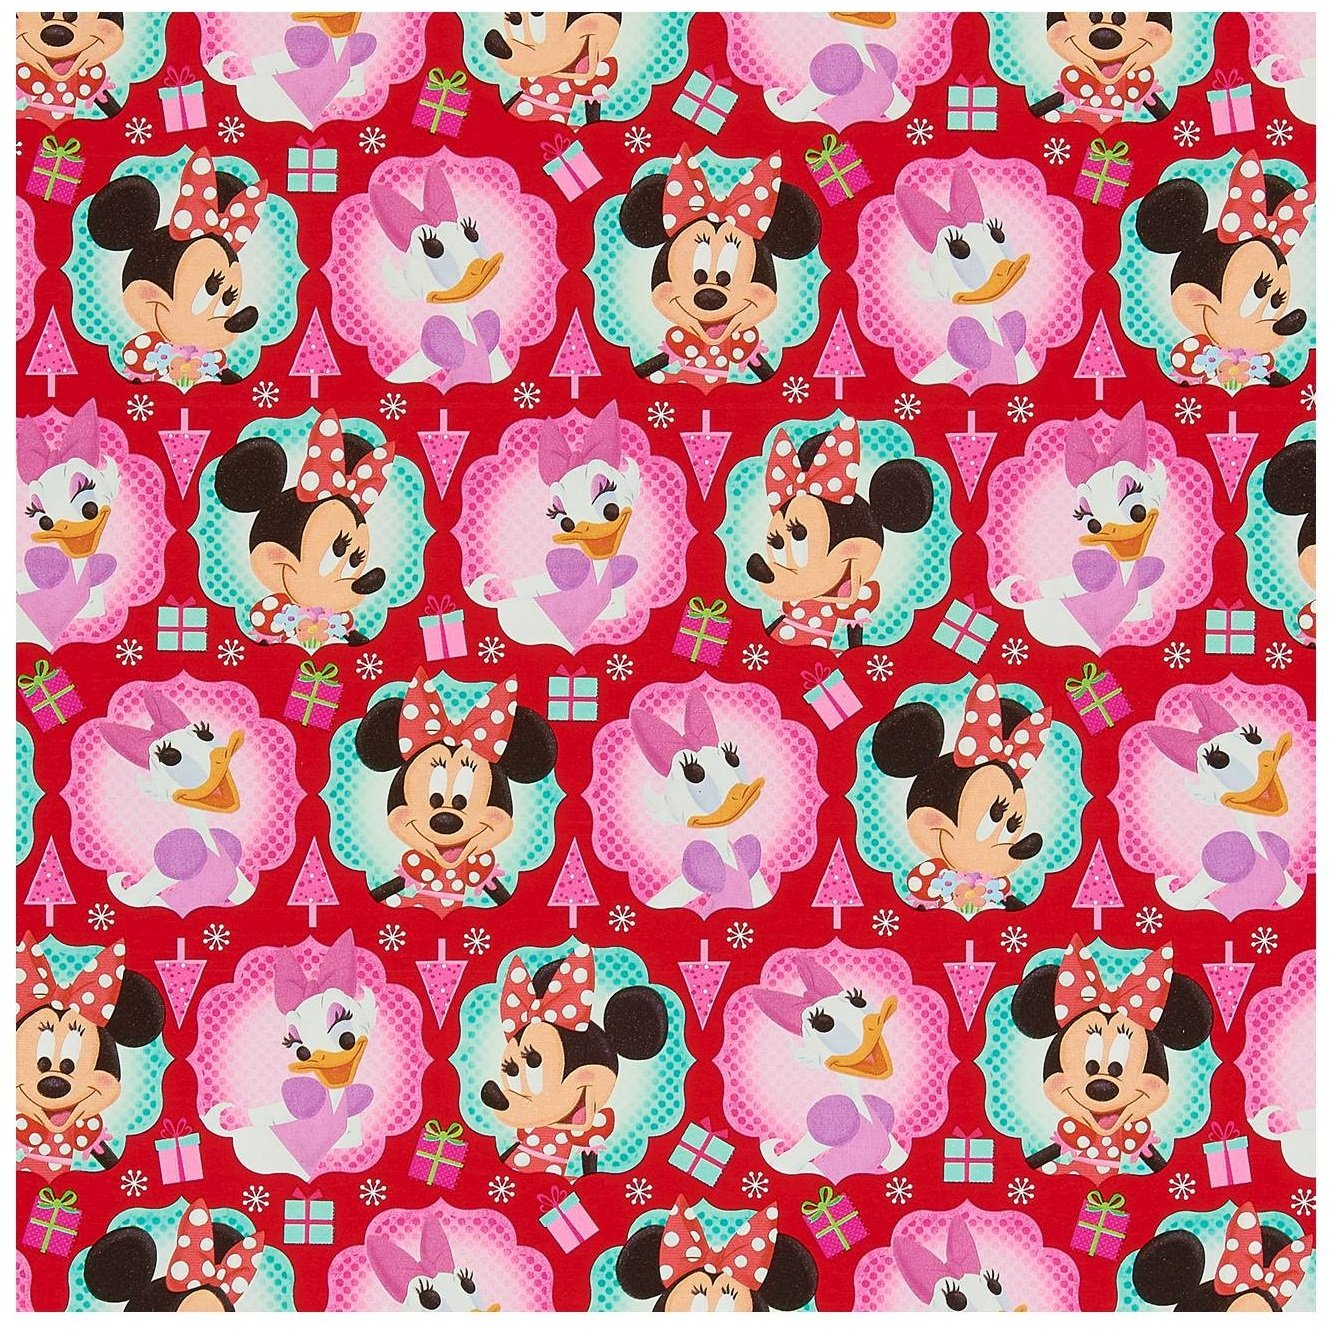 mickey mouse wrapping paper Cleo disney mickey mouse gift wrap wrapping paper holiday christmas gift wrapping paper - 20 sq ft roll new 2017 design (disney mickey and.